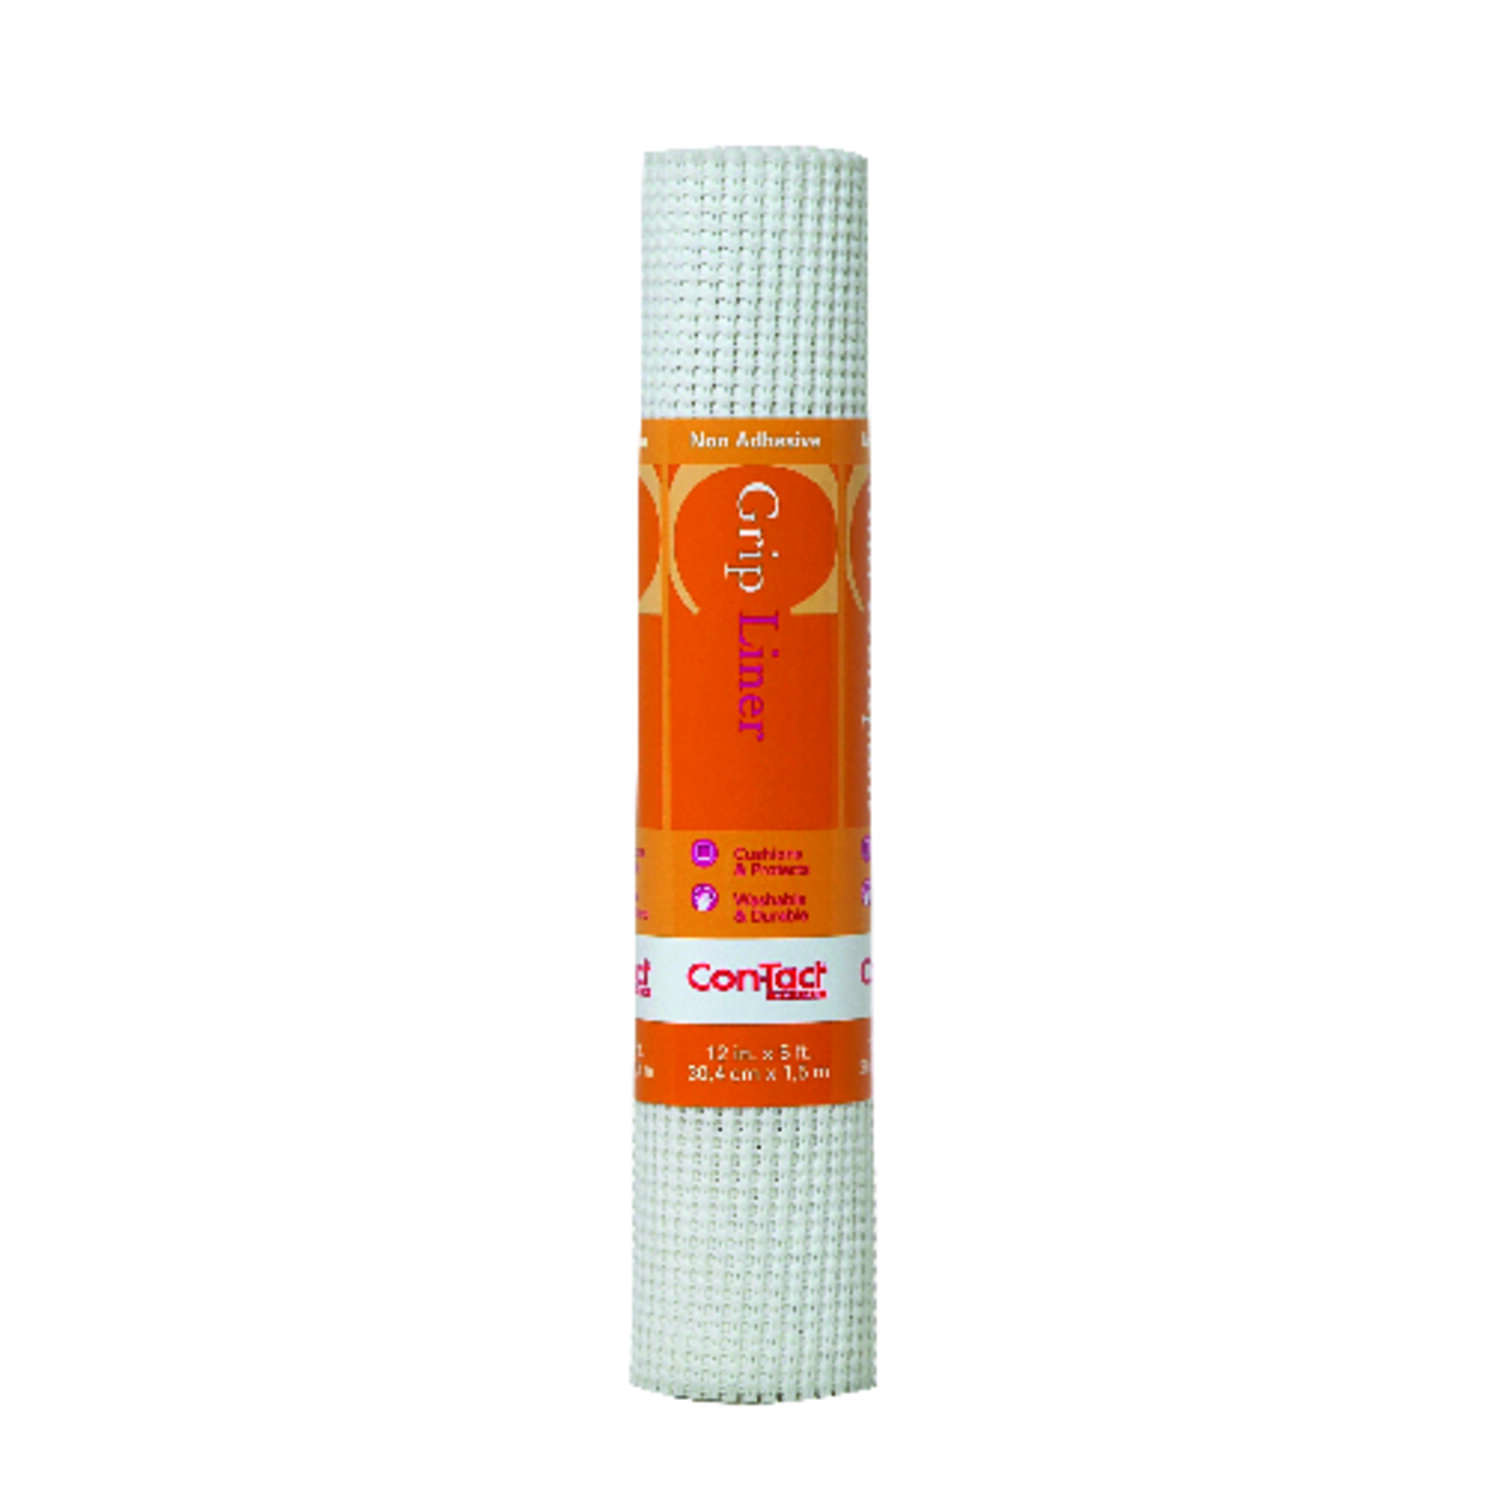 Con-Tact Brand  Beaded Grip  5 ft. L x 12 in. W White  Non-Adhesive  Shelf Liner